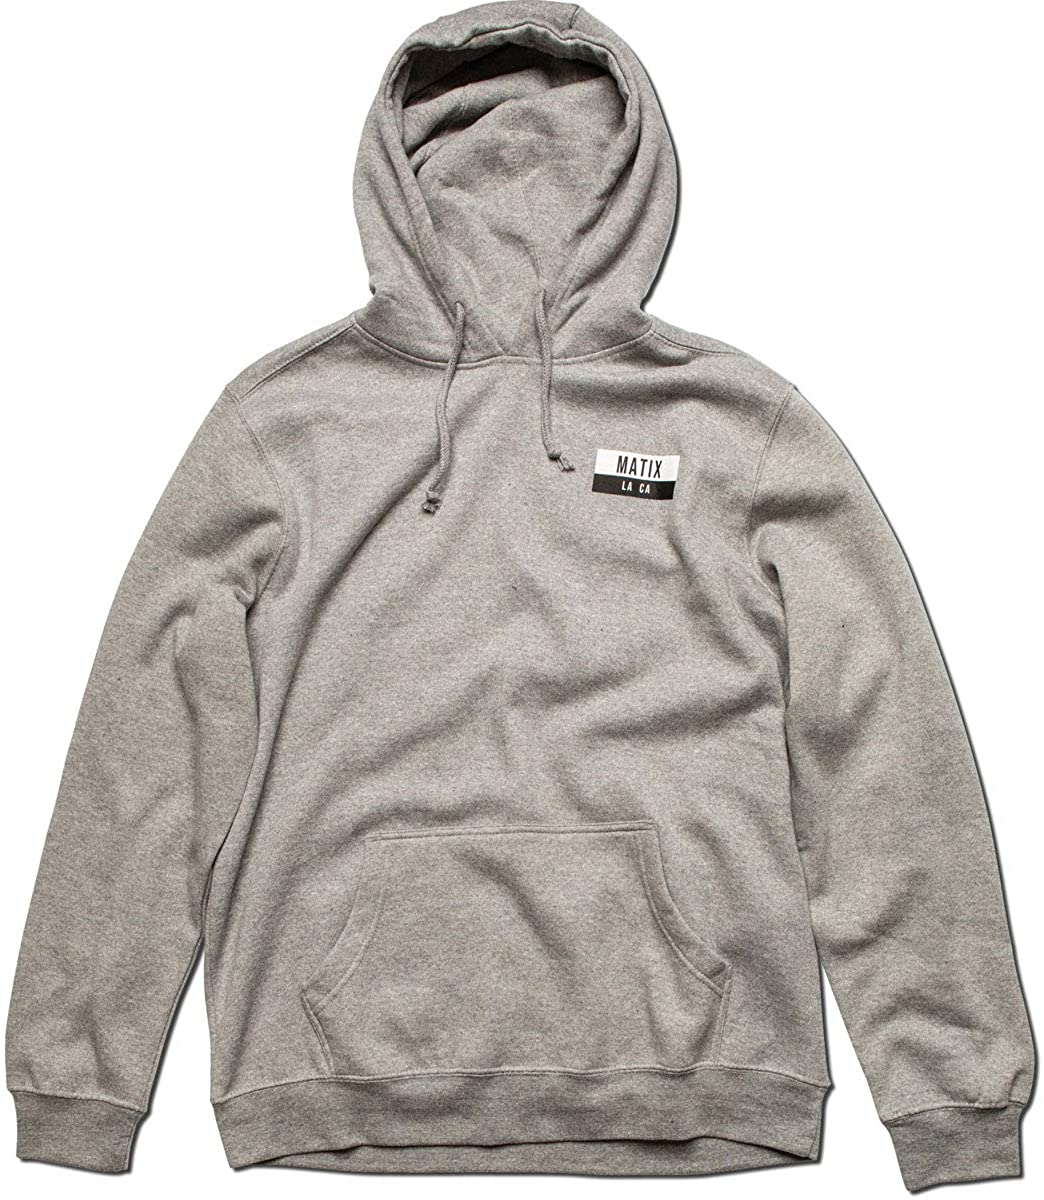 Matix Men's Ruthless Hoody